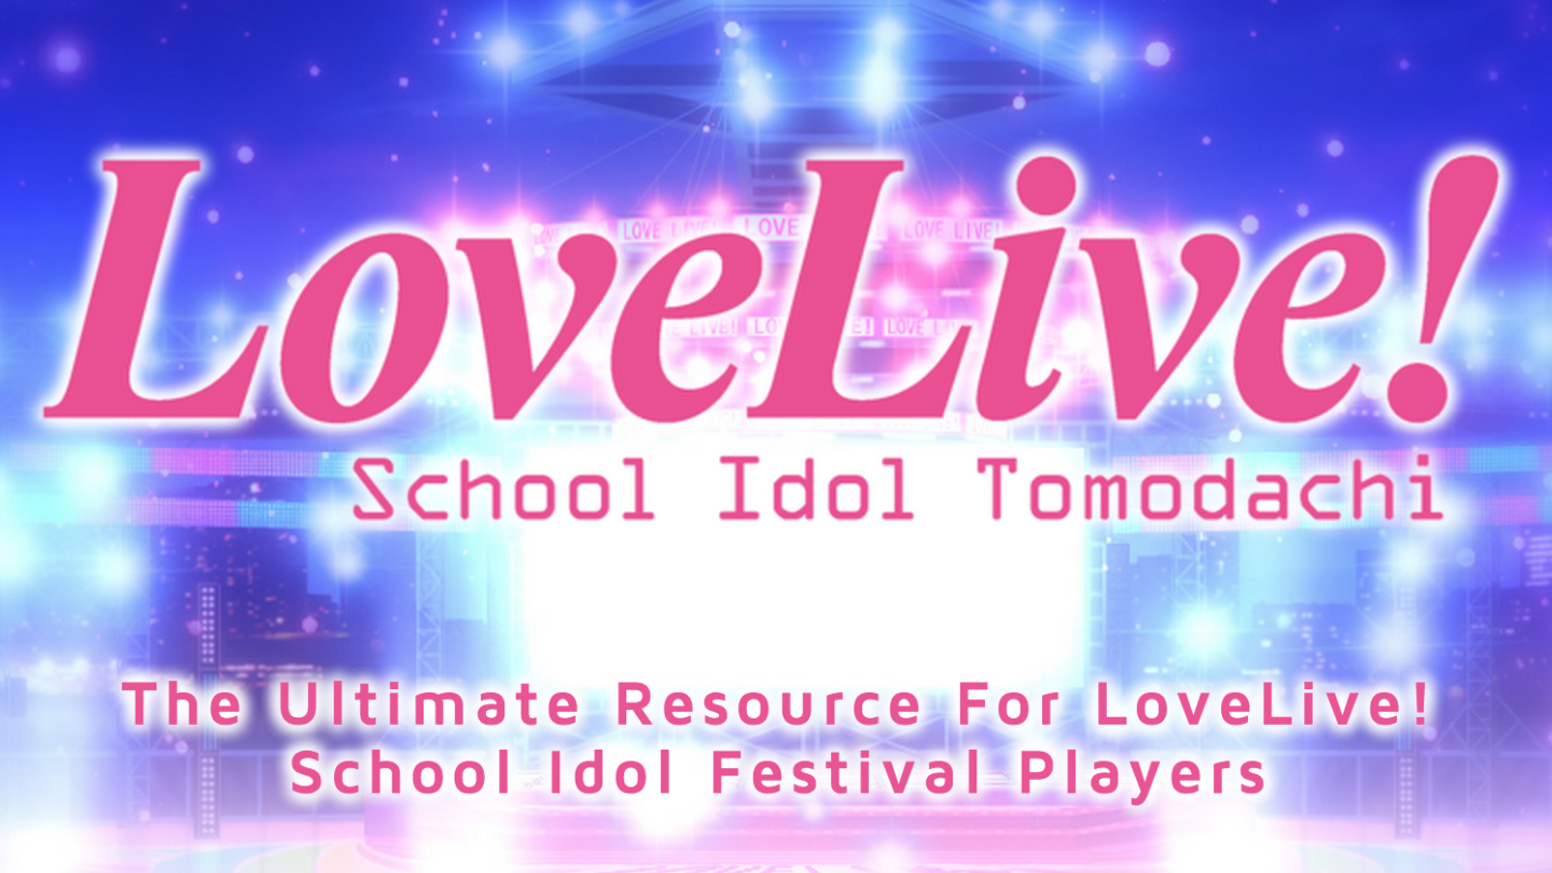 If you play School Idol Festival, School Idol Tomodachi is the ultimate resource for links, information, fun & more!